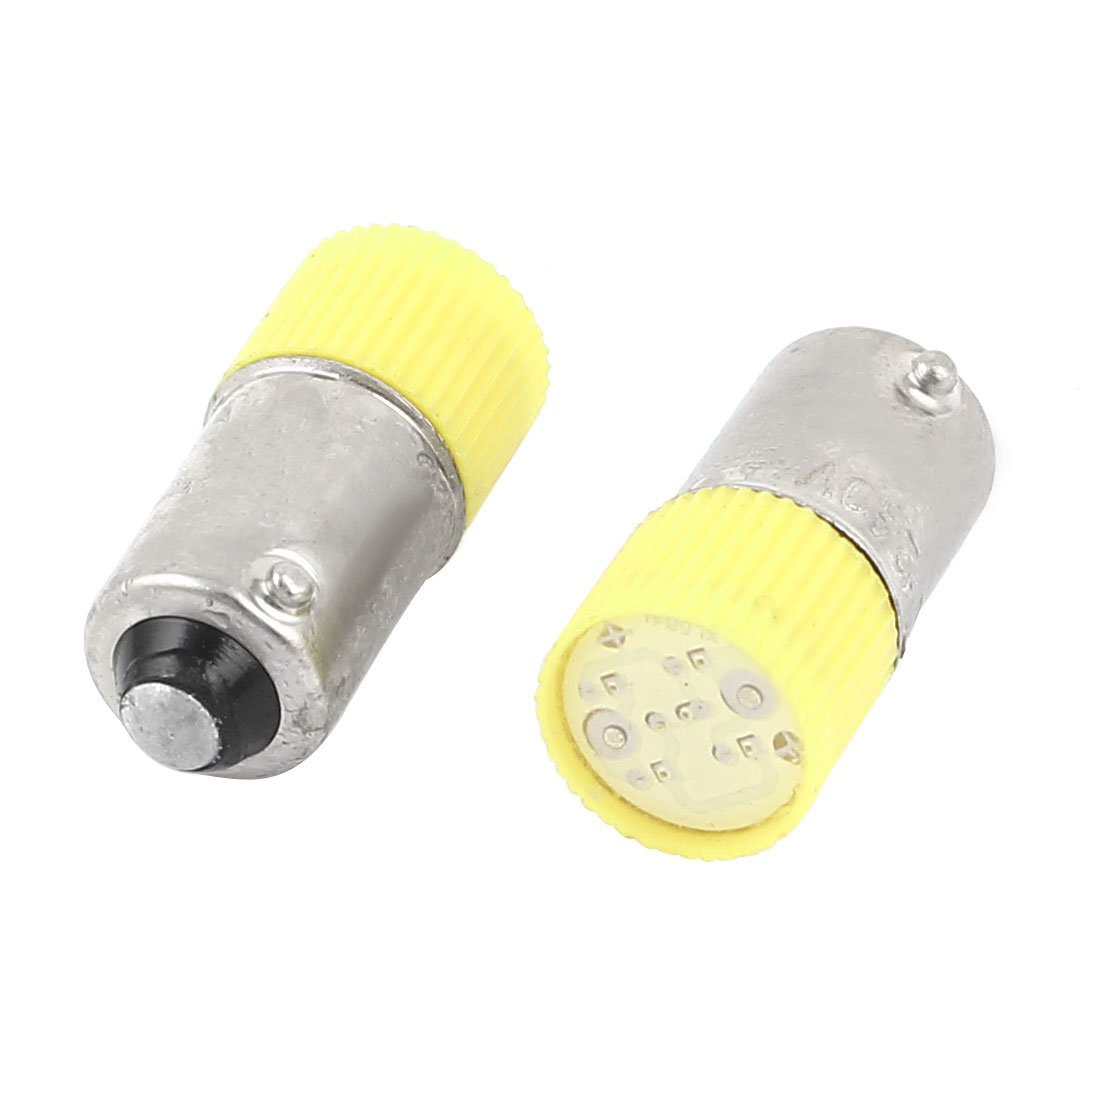 2 Pieces 10mm Round Head Yellow LED Light Signal Indicator Lamp AC 220V/240V 3A